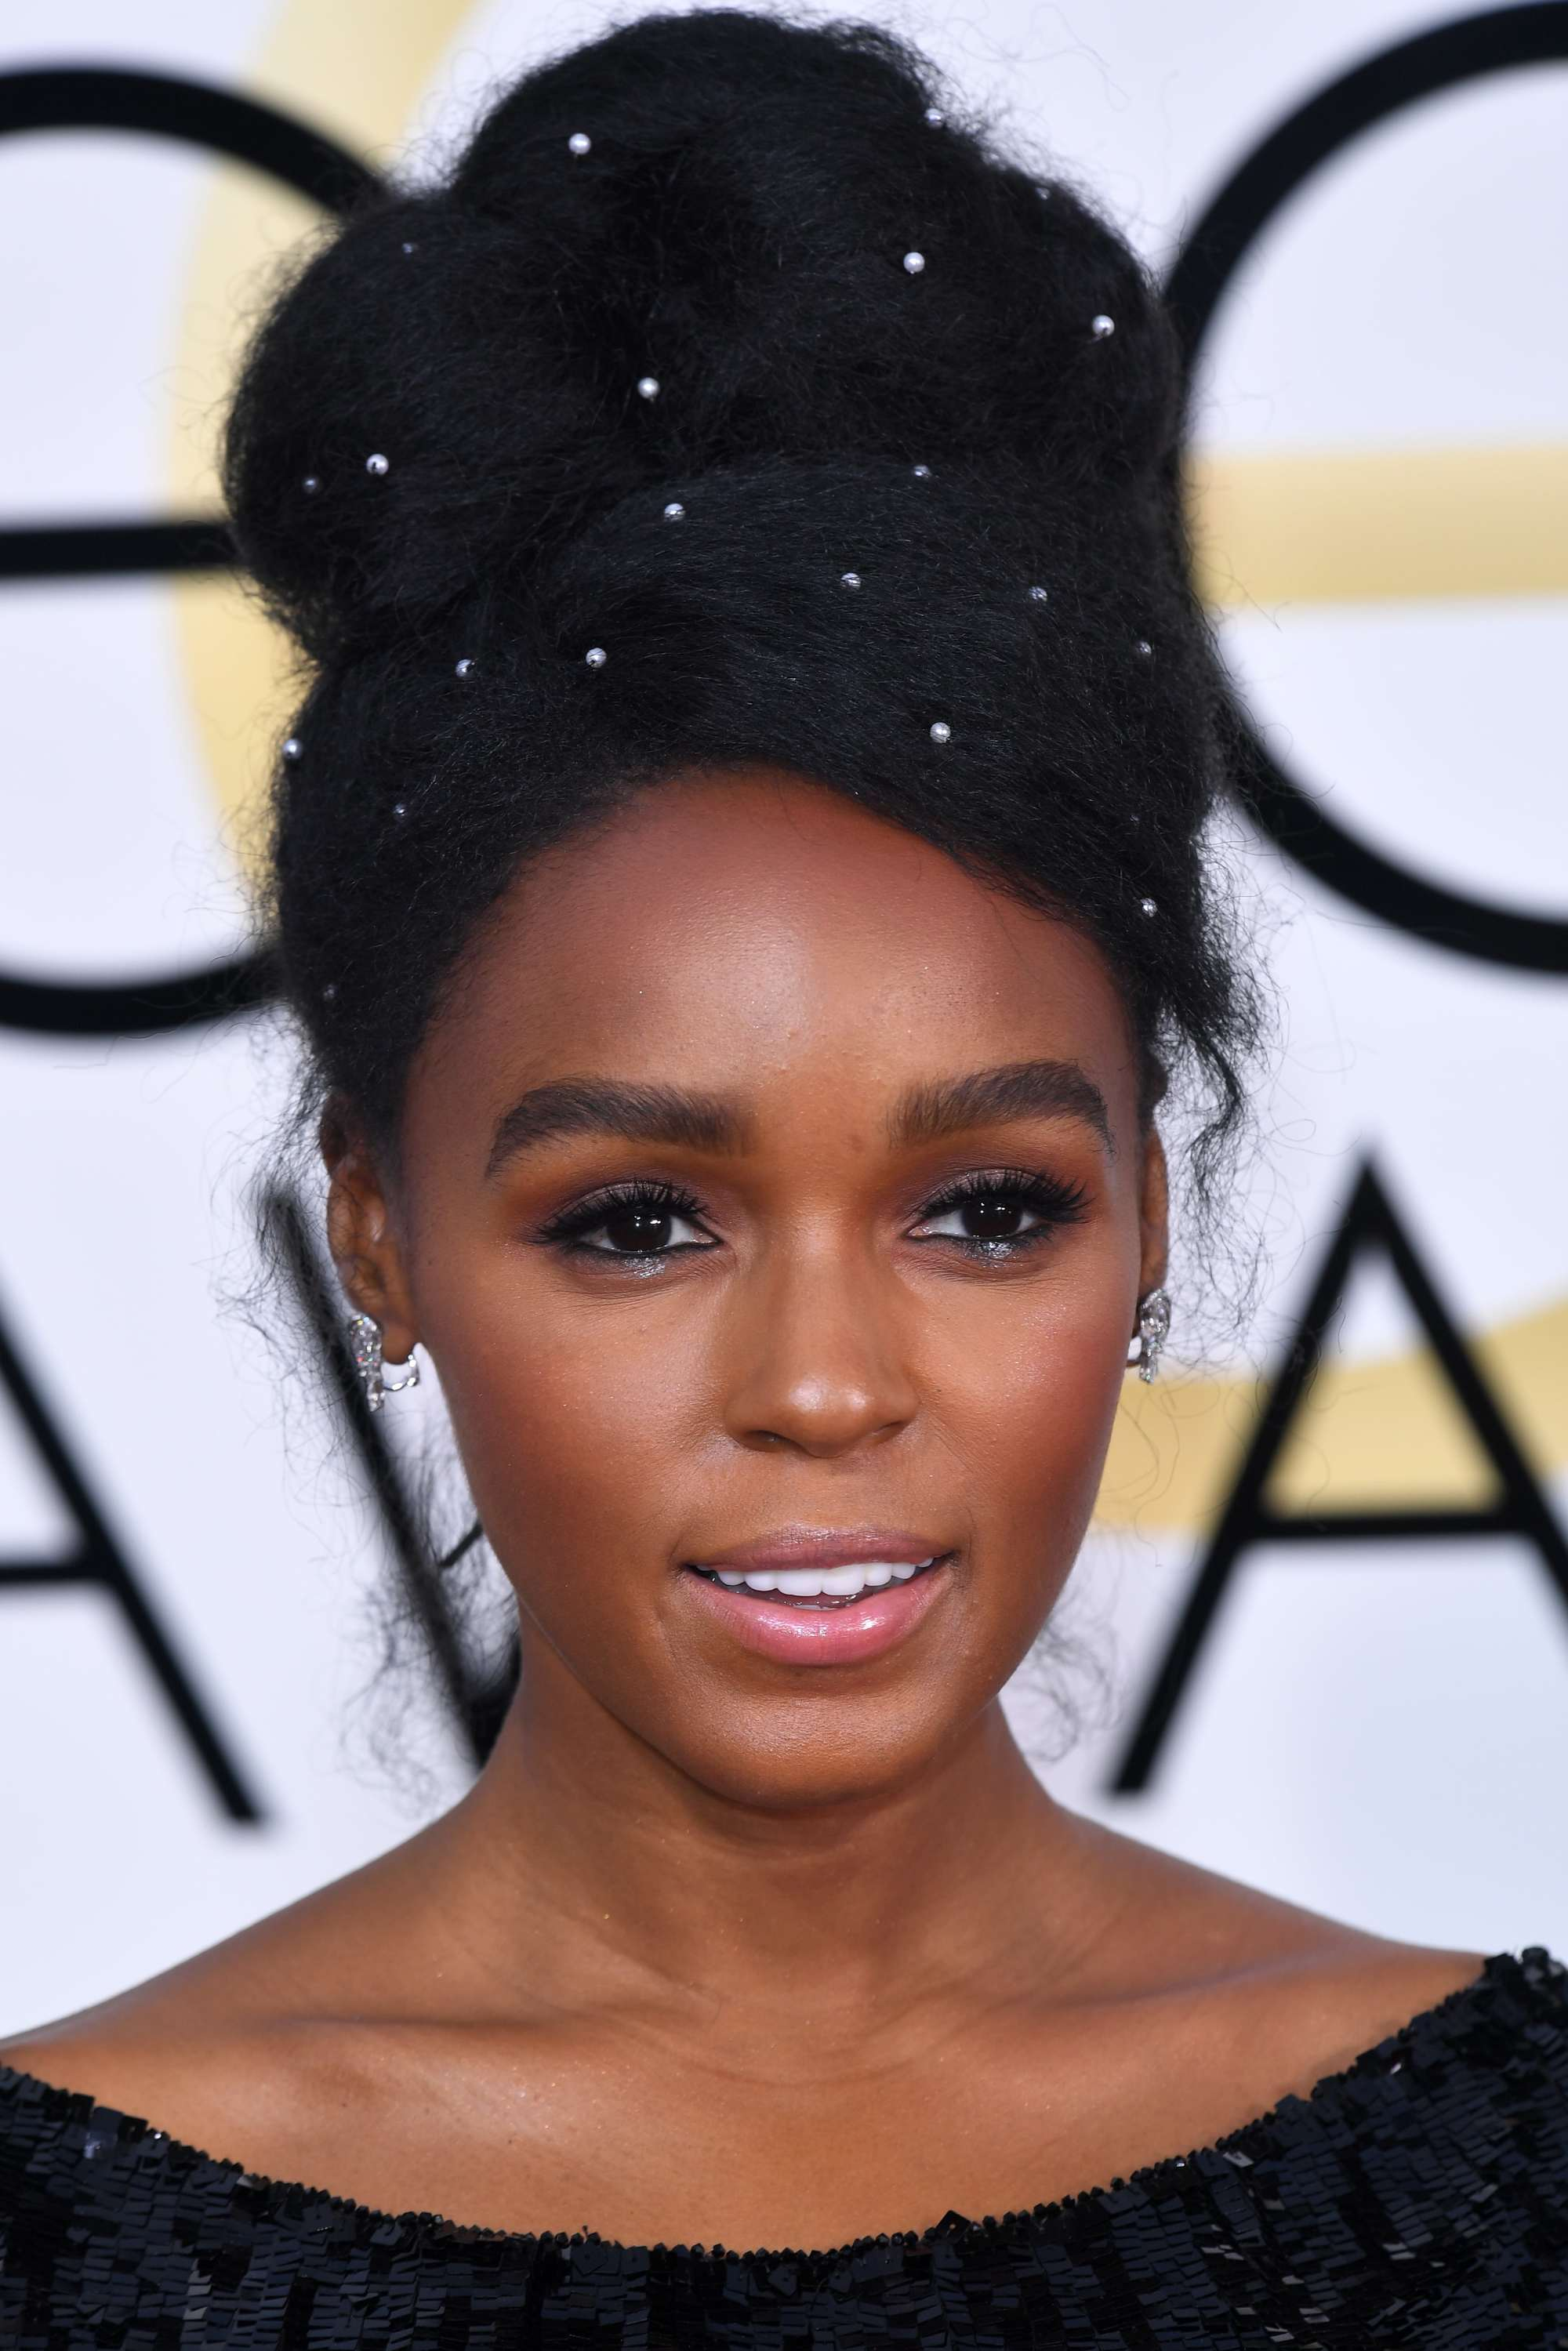 black prom hairstyles: janelle monae with a high bun updo with pearl hair accessories at the met gala